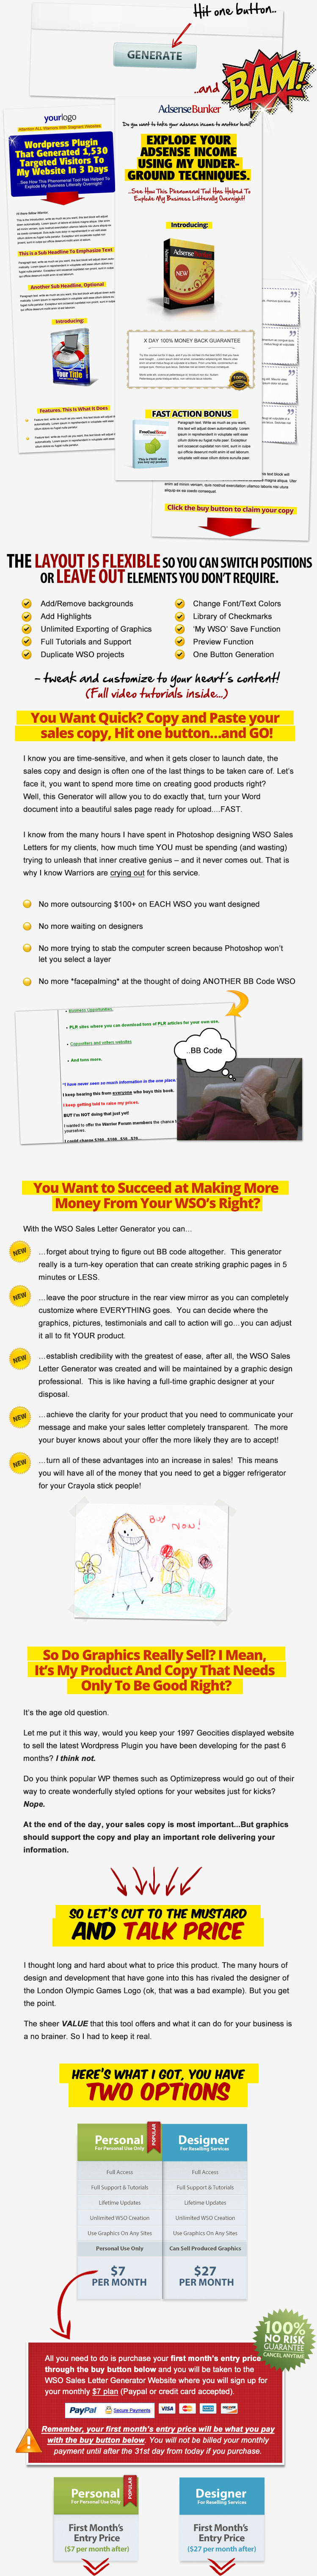 Wso sales letter generator closed wso sales letter generator demo and launch spiritdancerdesigns Choice Image